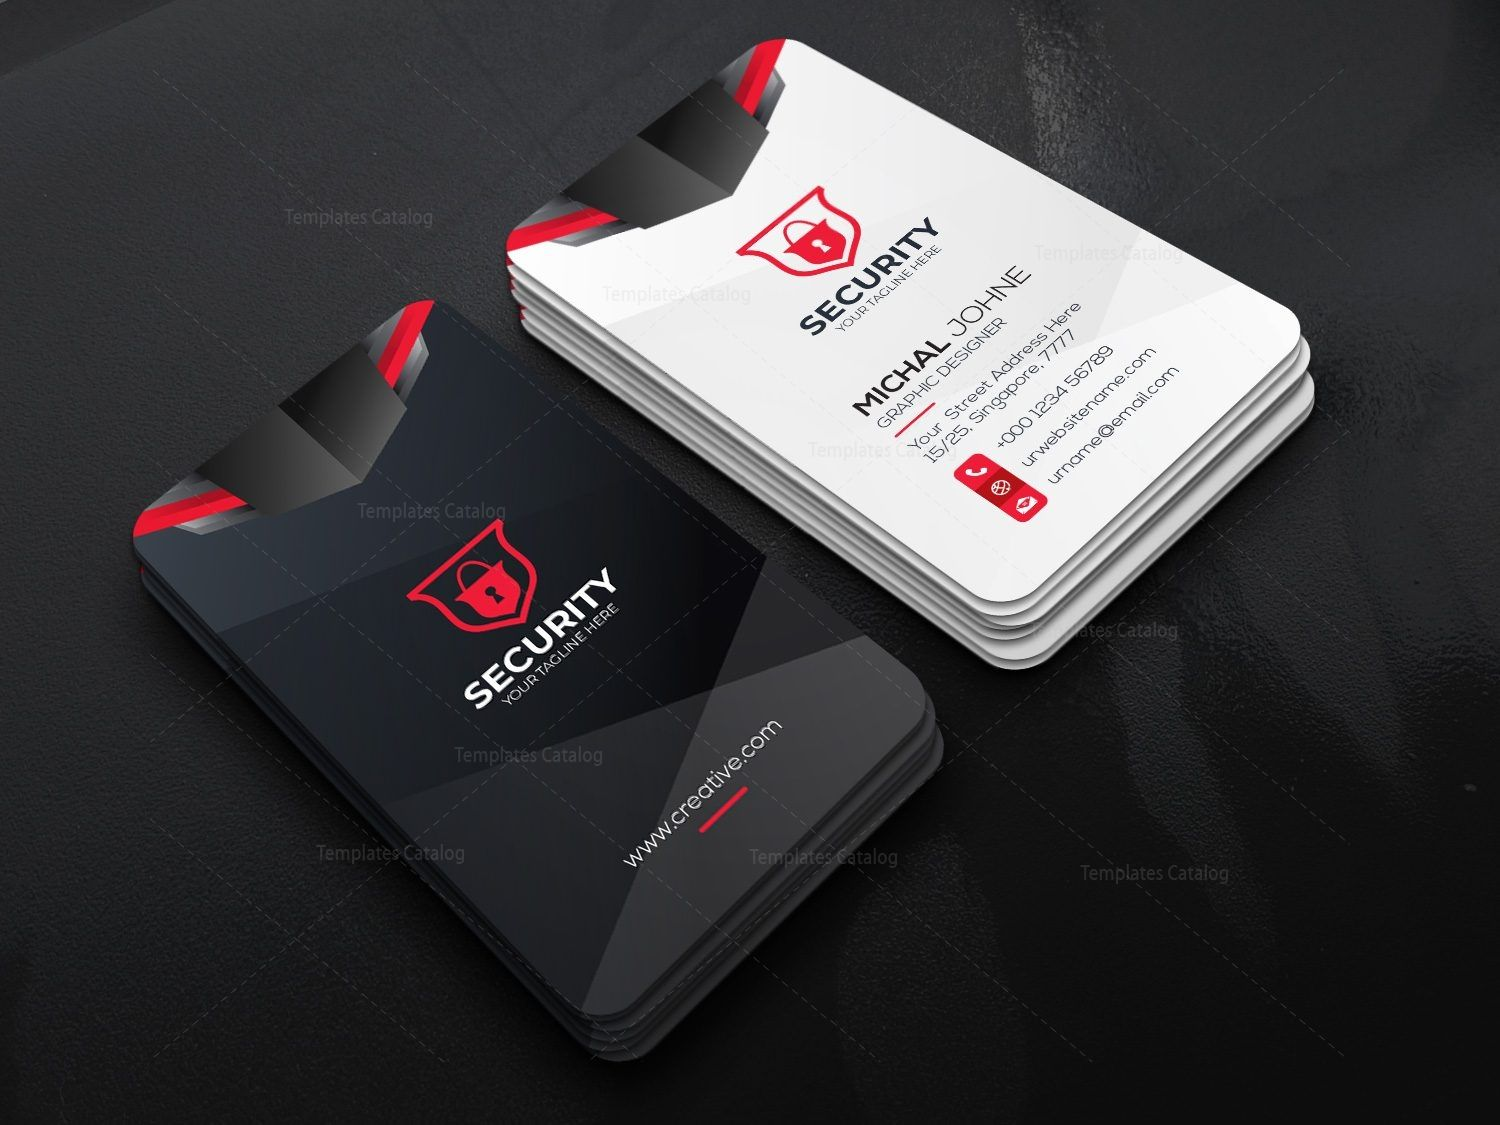 Security Company Vertical Business Card Design Template 001791 Template Catalog Vertical Business Cards Vertical Business Card Design Business Card Template Design